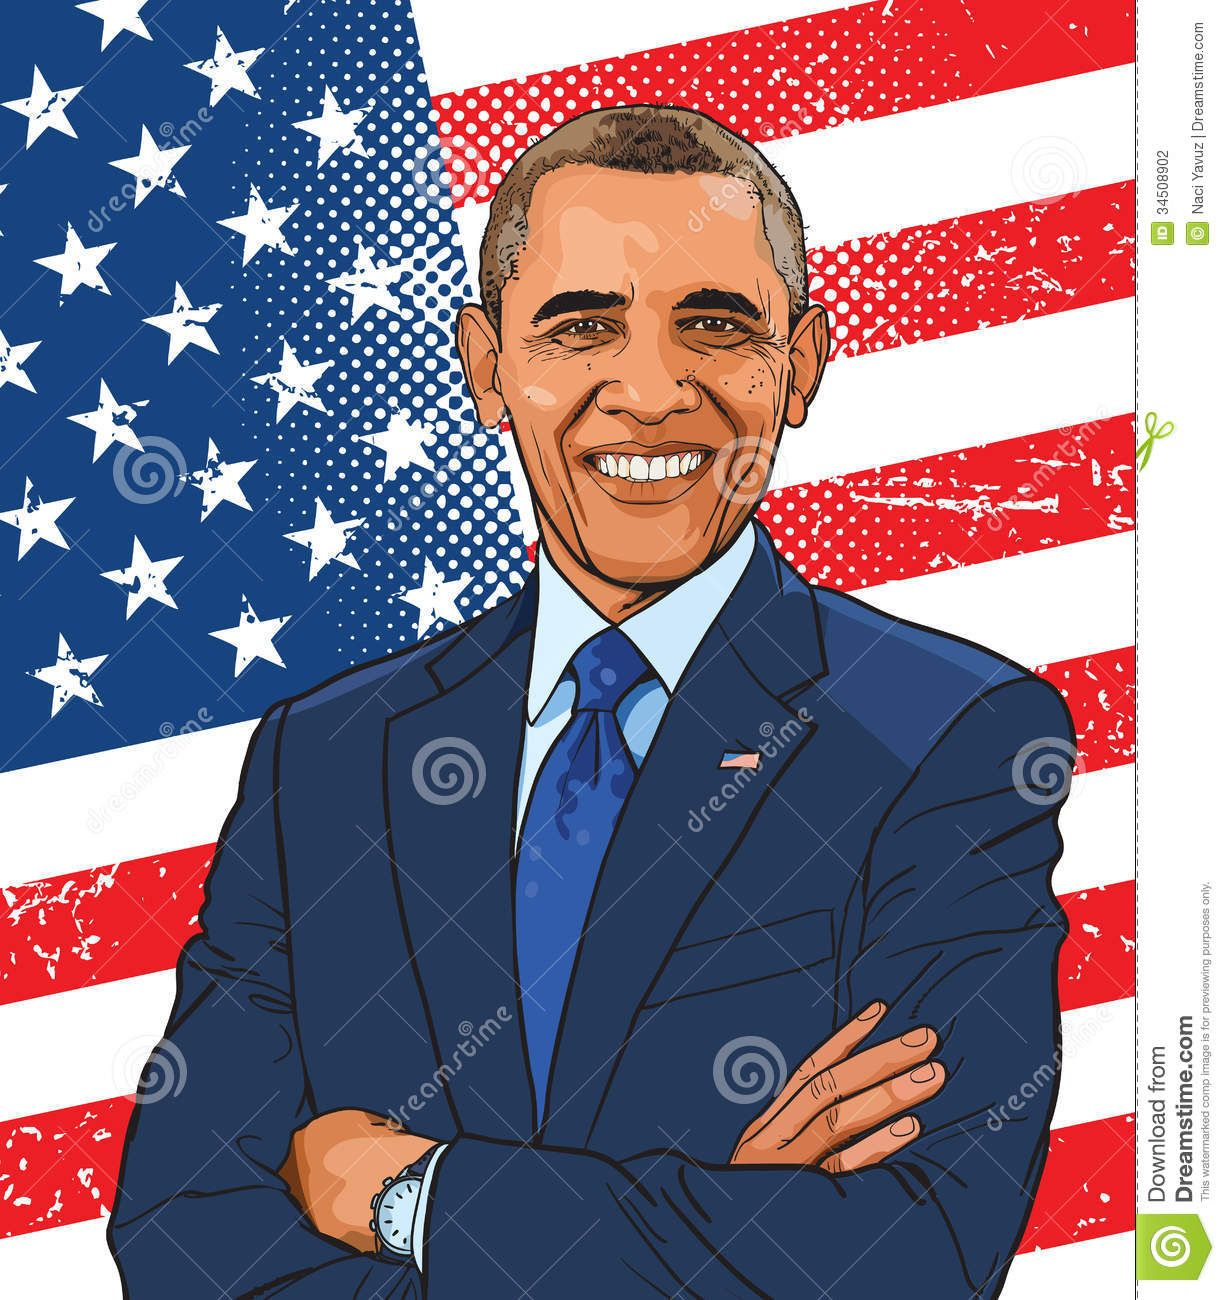 Obama Clipart - Clipart Suggest